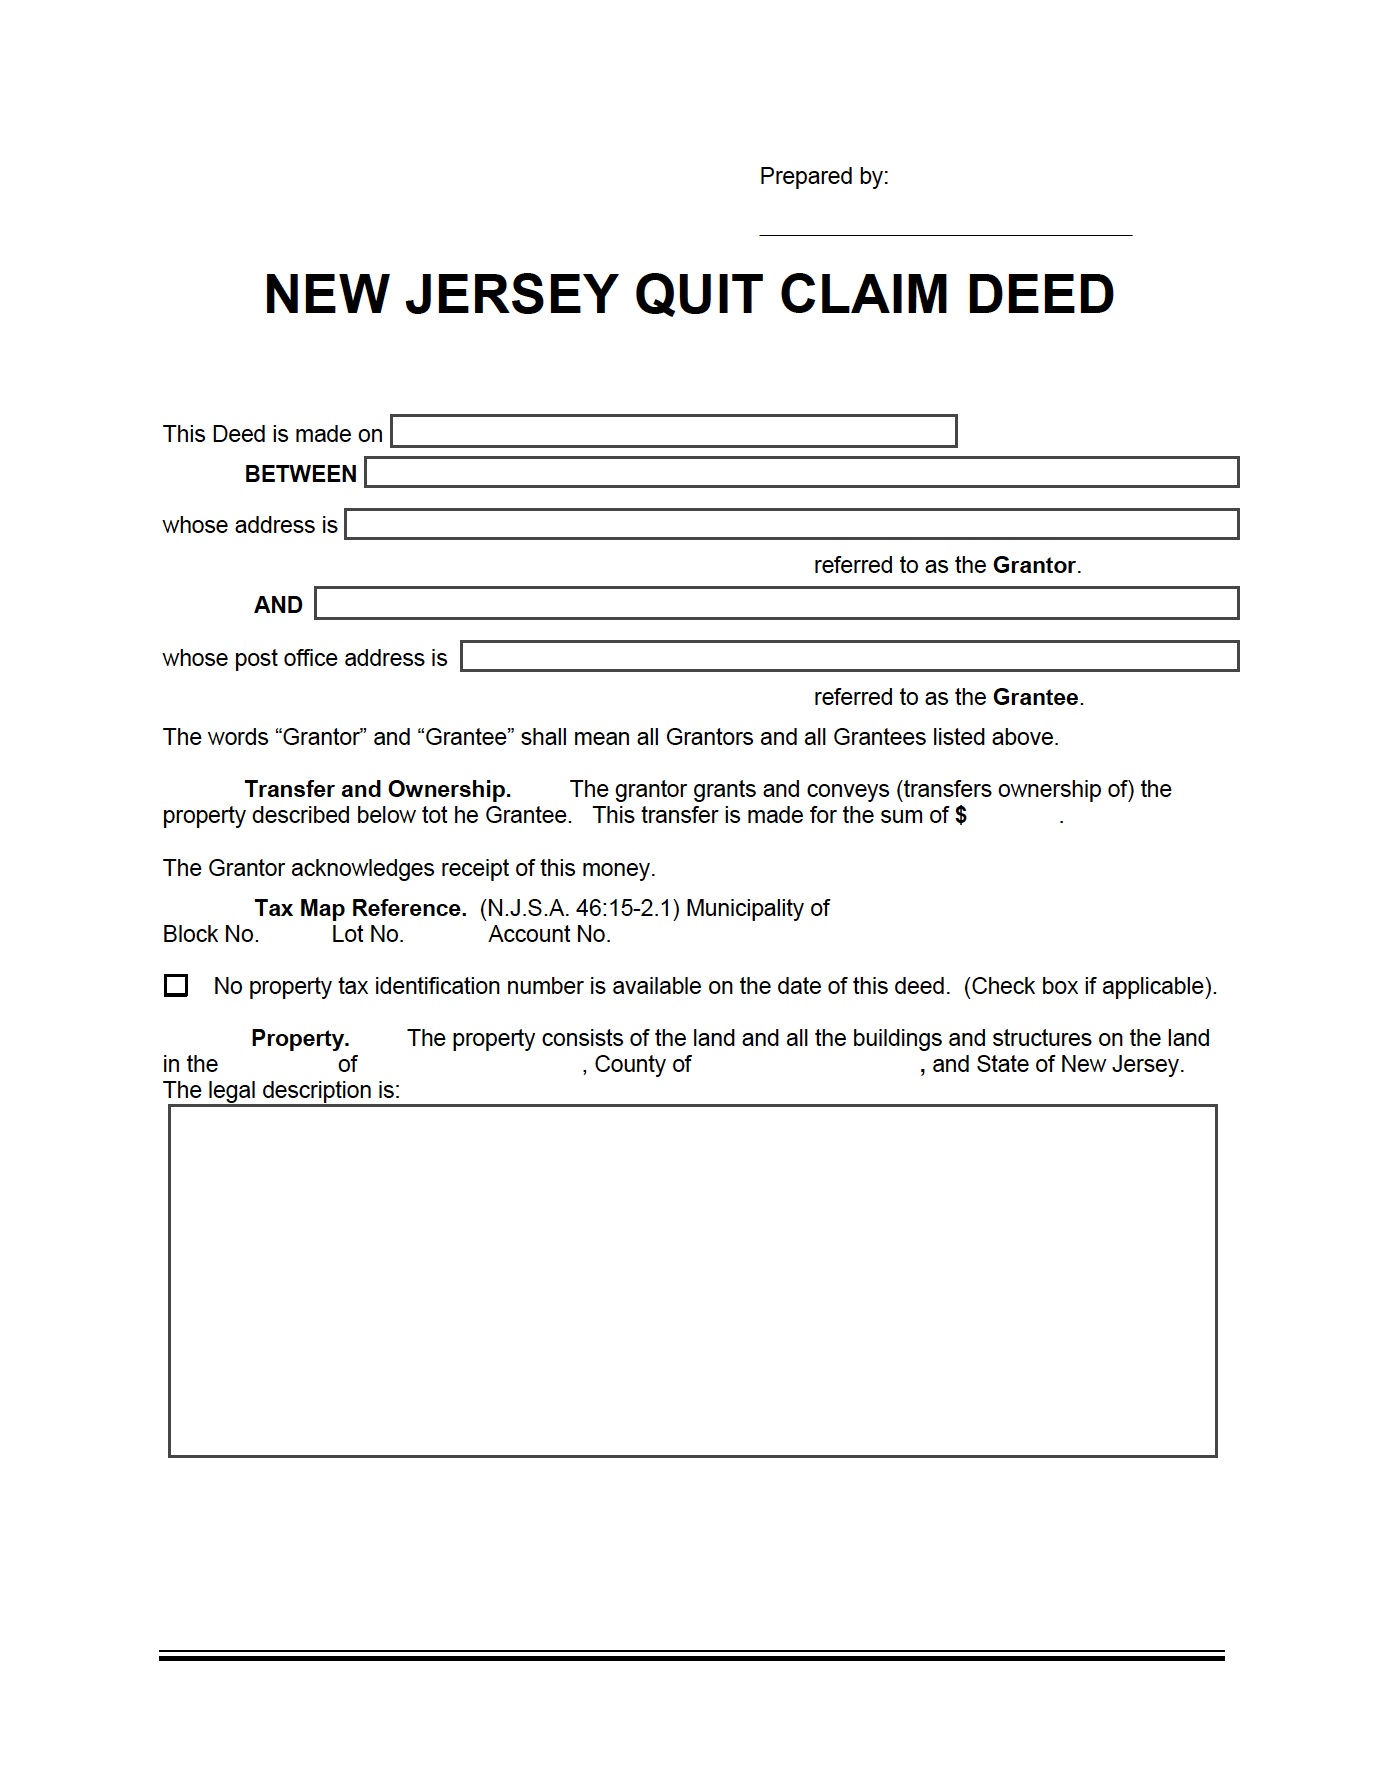 New Jersey Quit Claim Deed Form In 2020 Quites New Jersey Jersey